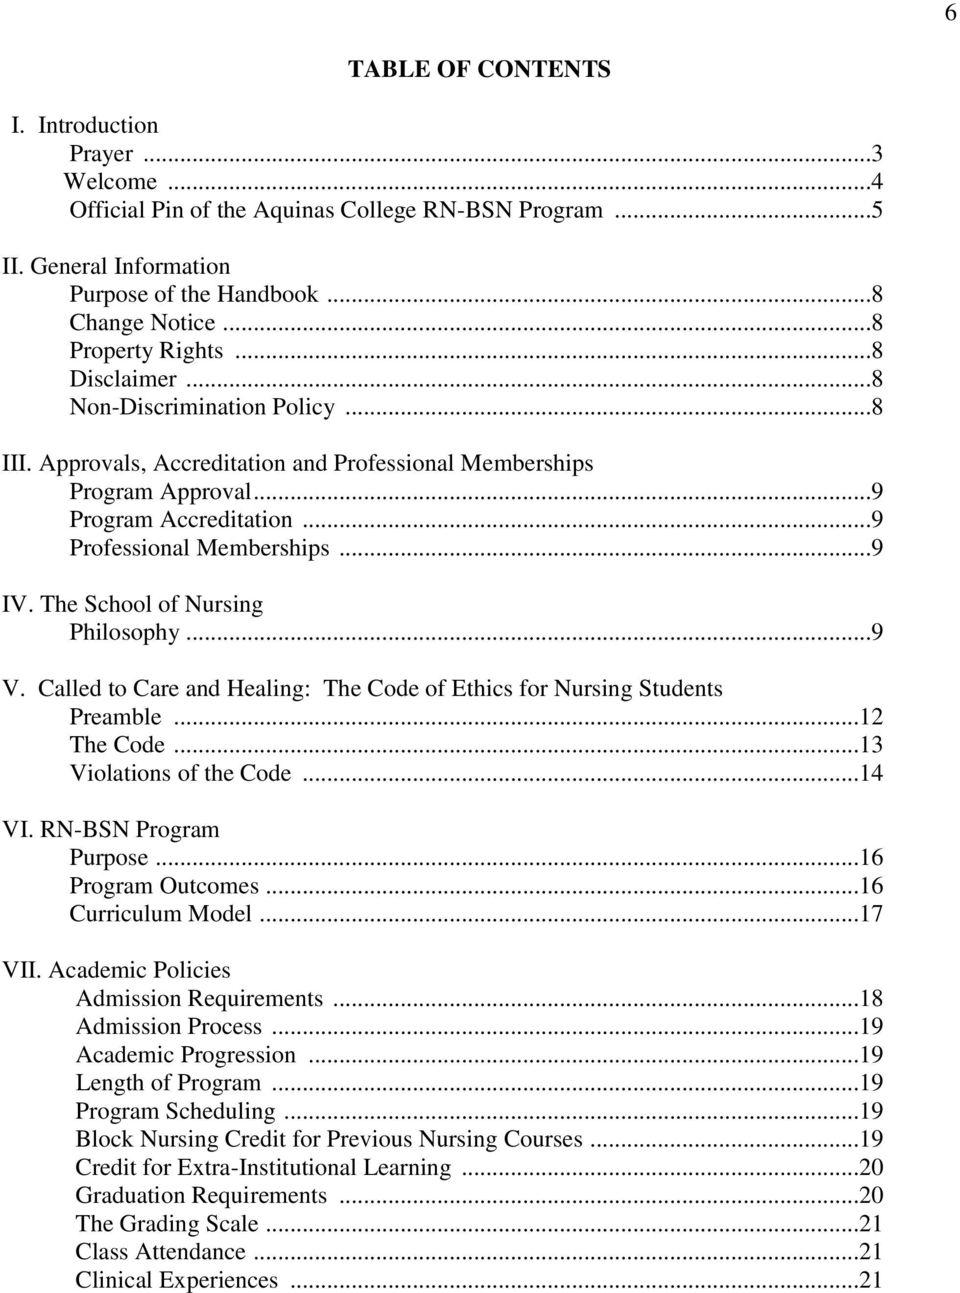 The School of Nursing Philosophy...9 V. Called to Care and Healing: The Code of Ethics for Nursing Students Preamble...12 The Code...13 Violations of the Code...14 VI. RN-BSN Program Purpose.